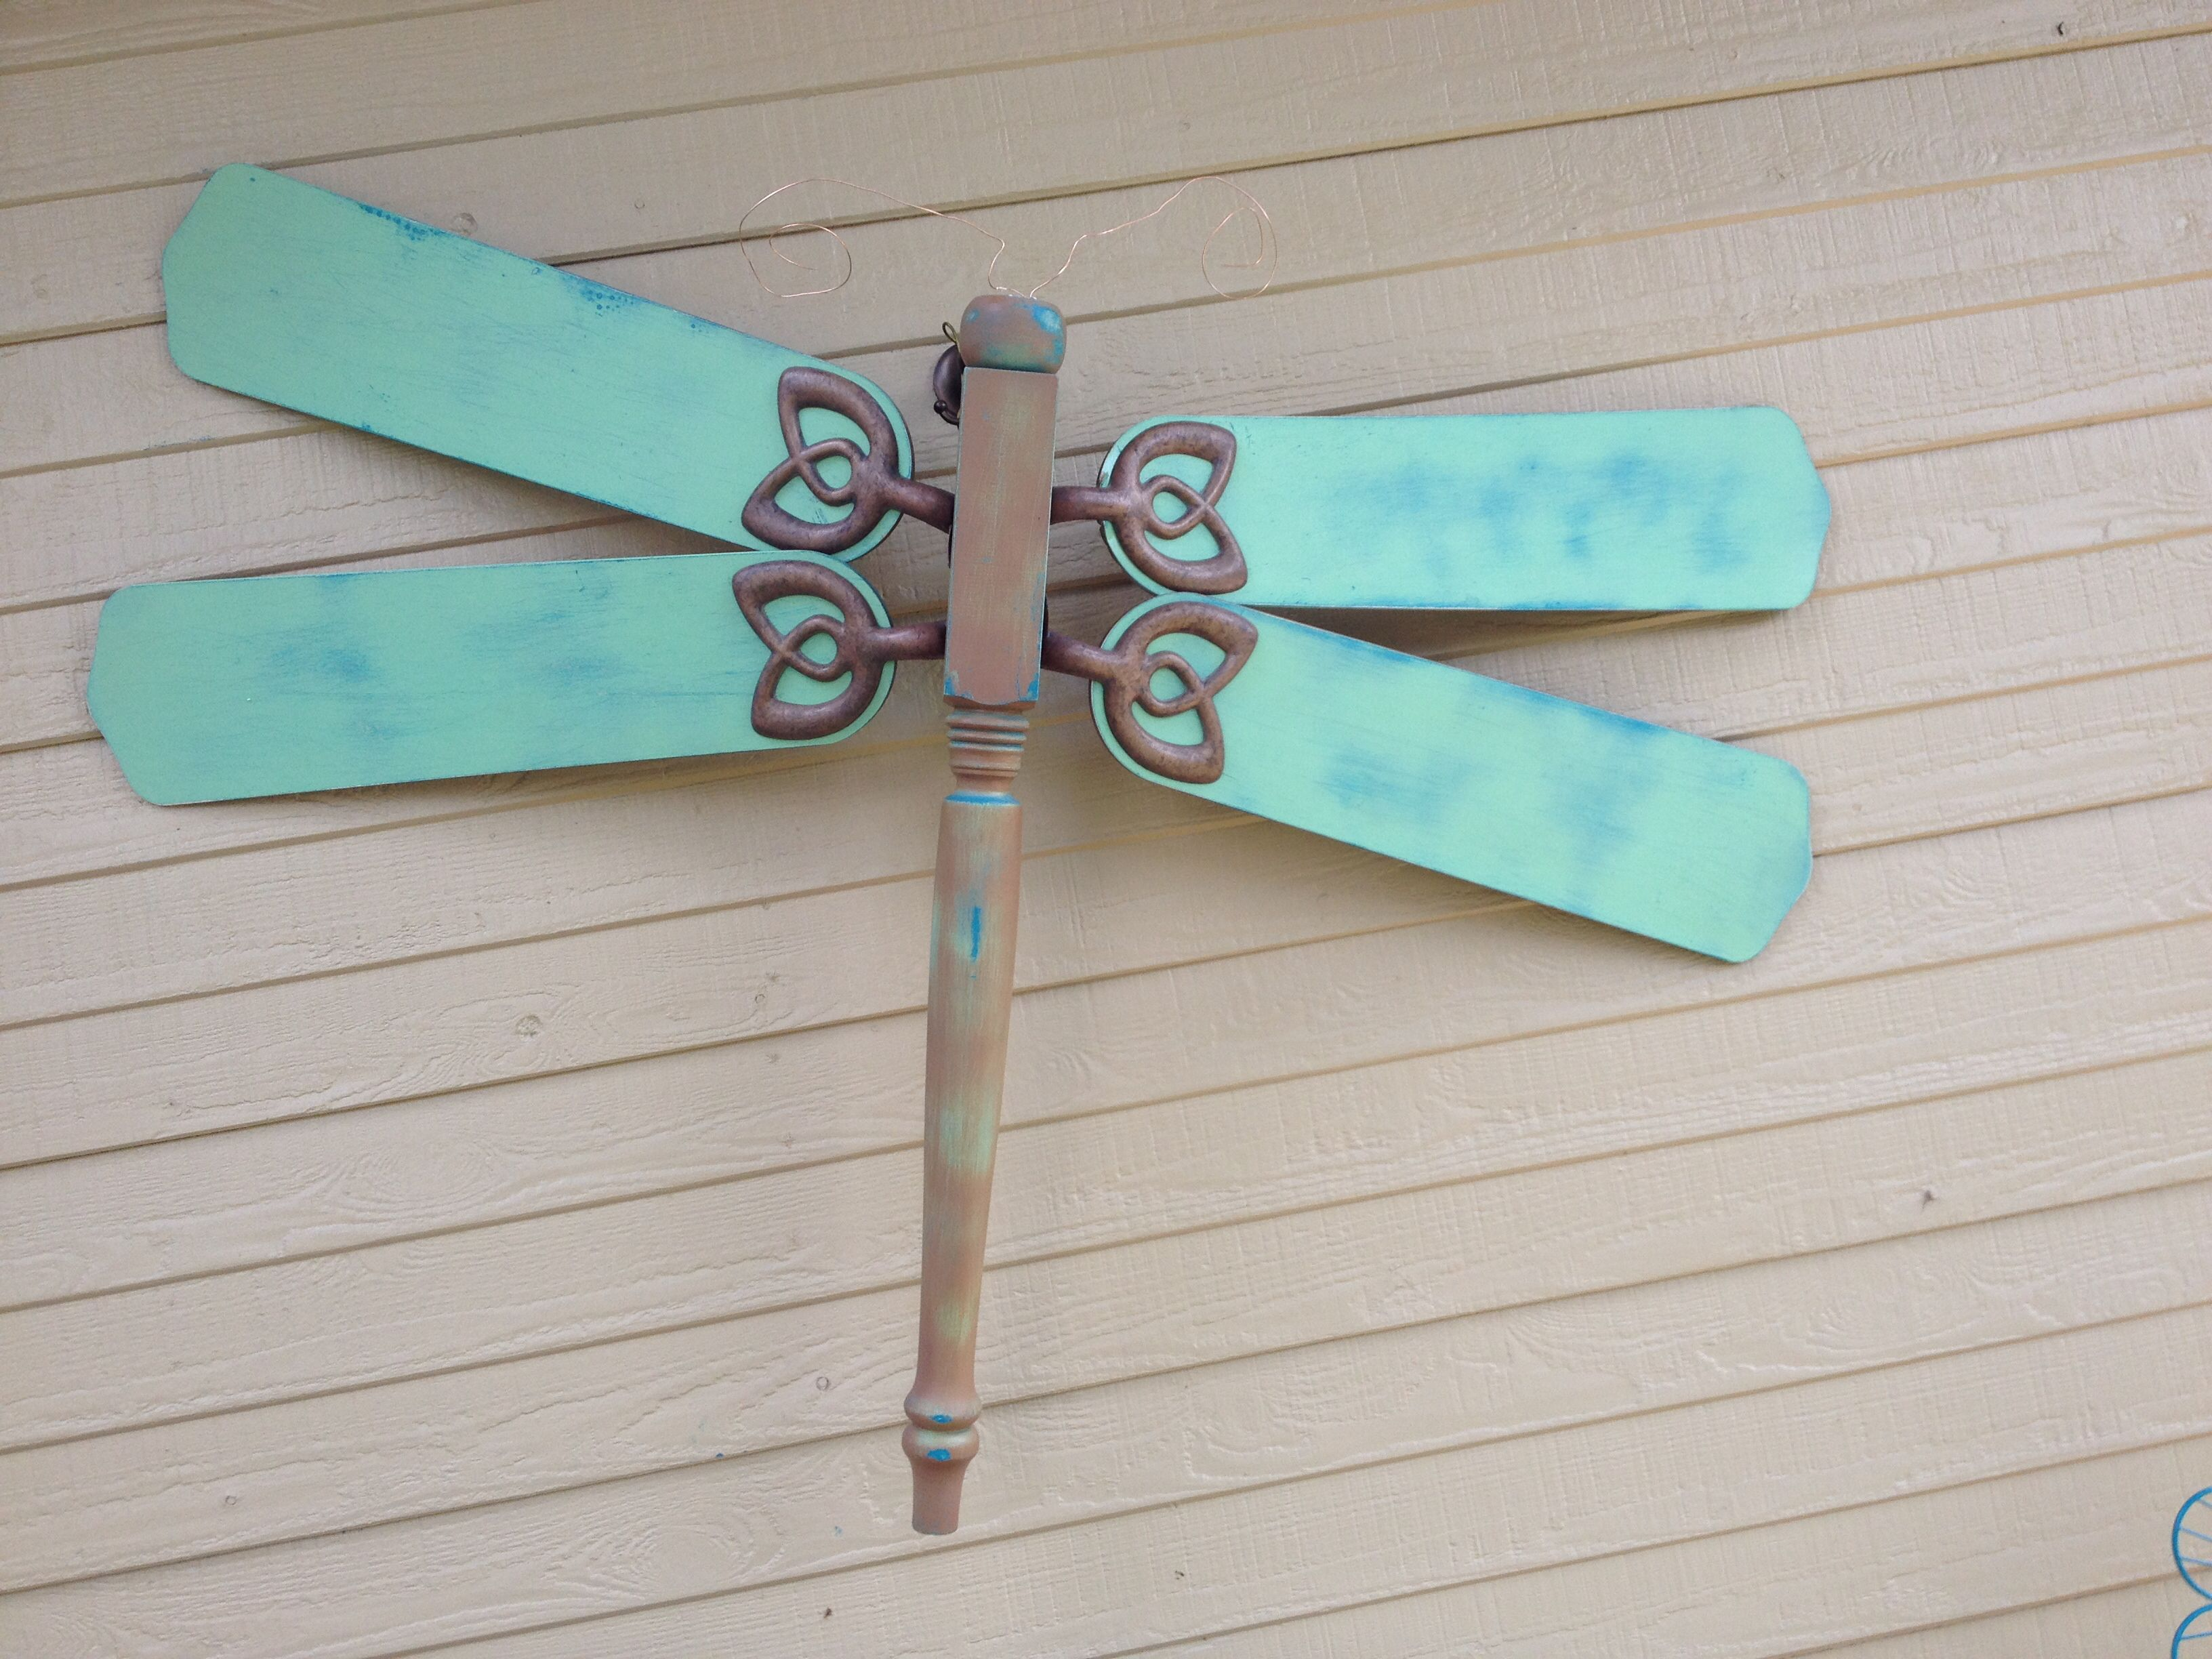 Dragonfly made from ceiling fan blade i have extra blades too dragonfly made from ceiling fan blade i have extra blades too aloadofball Image collections